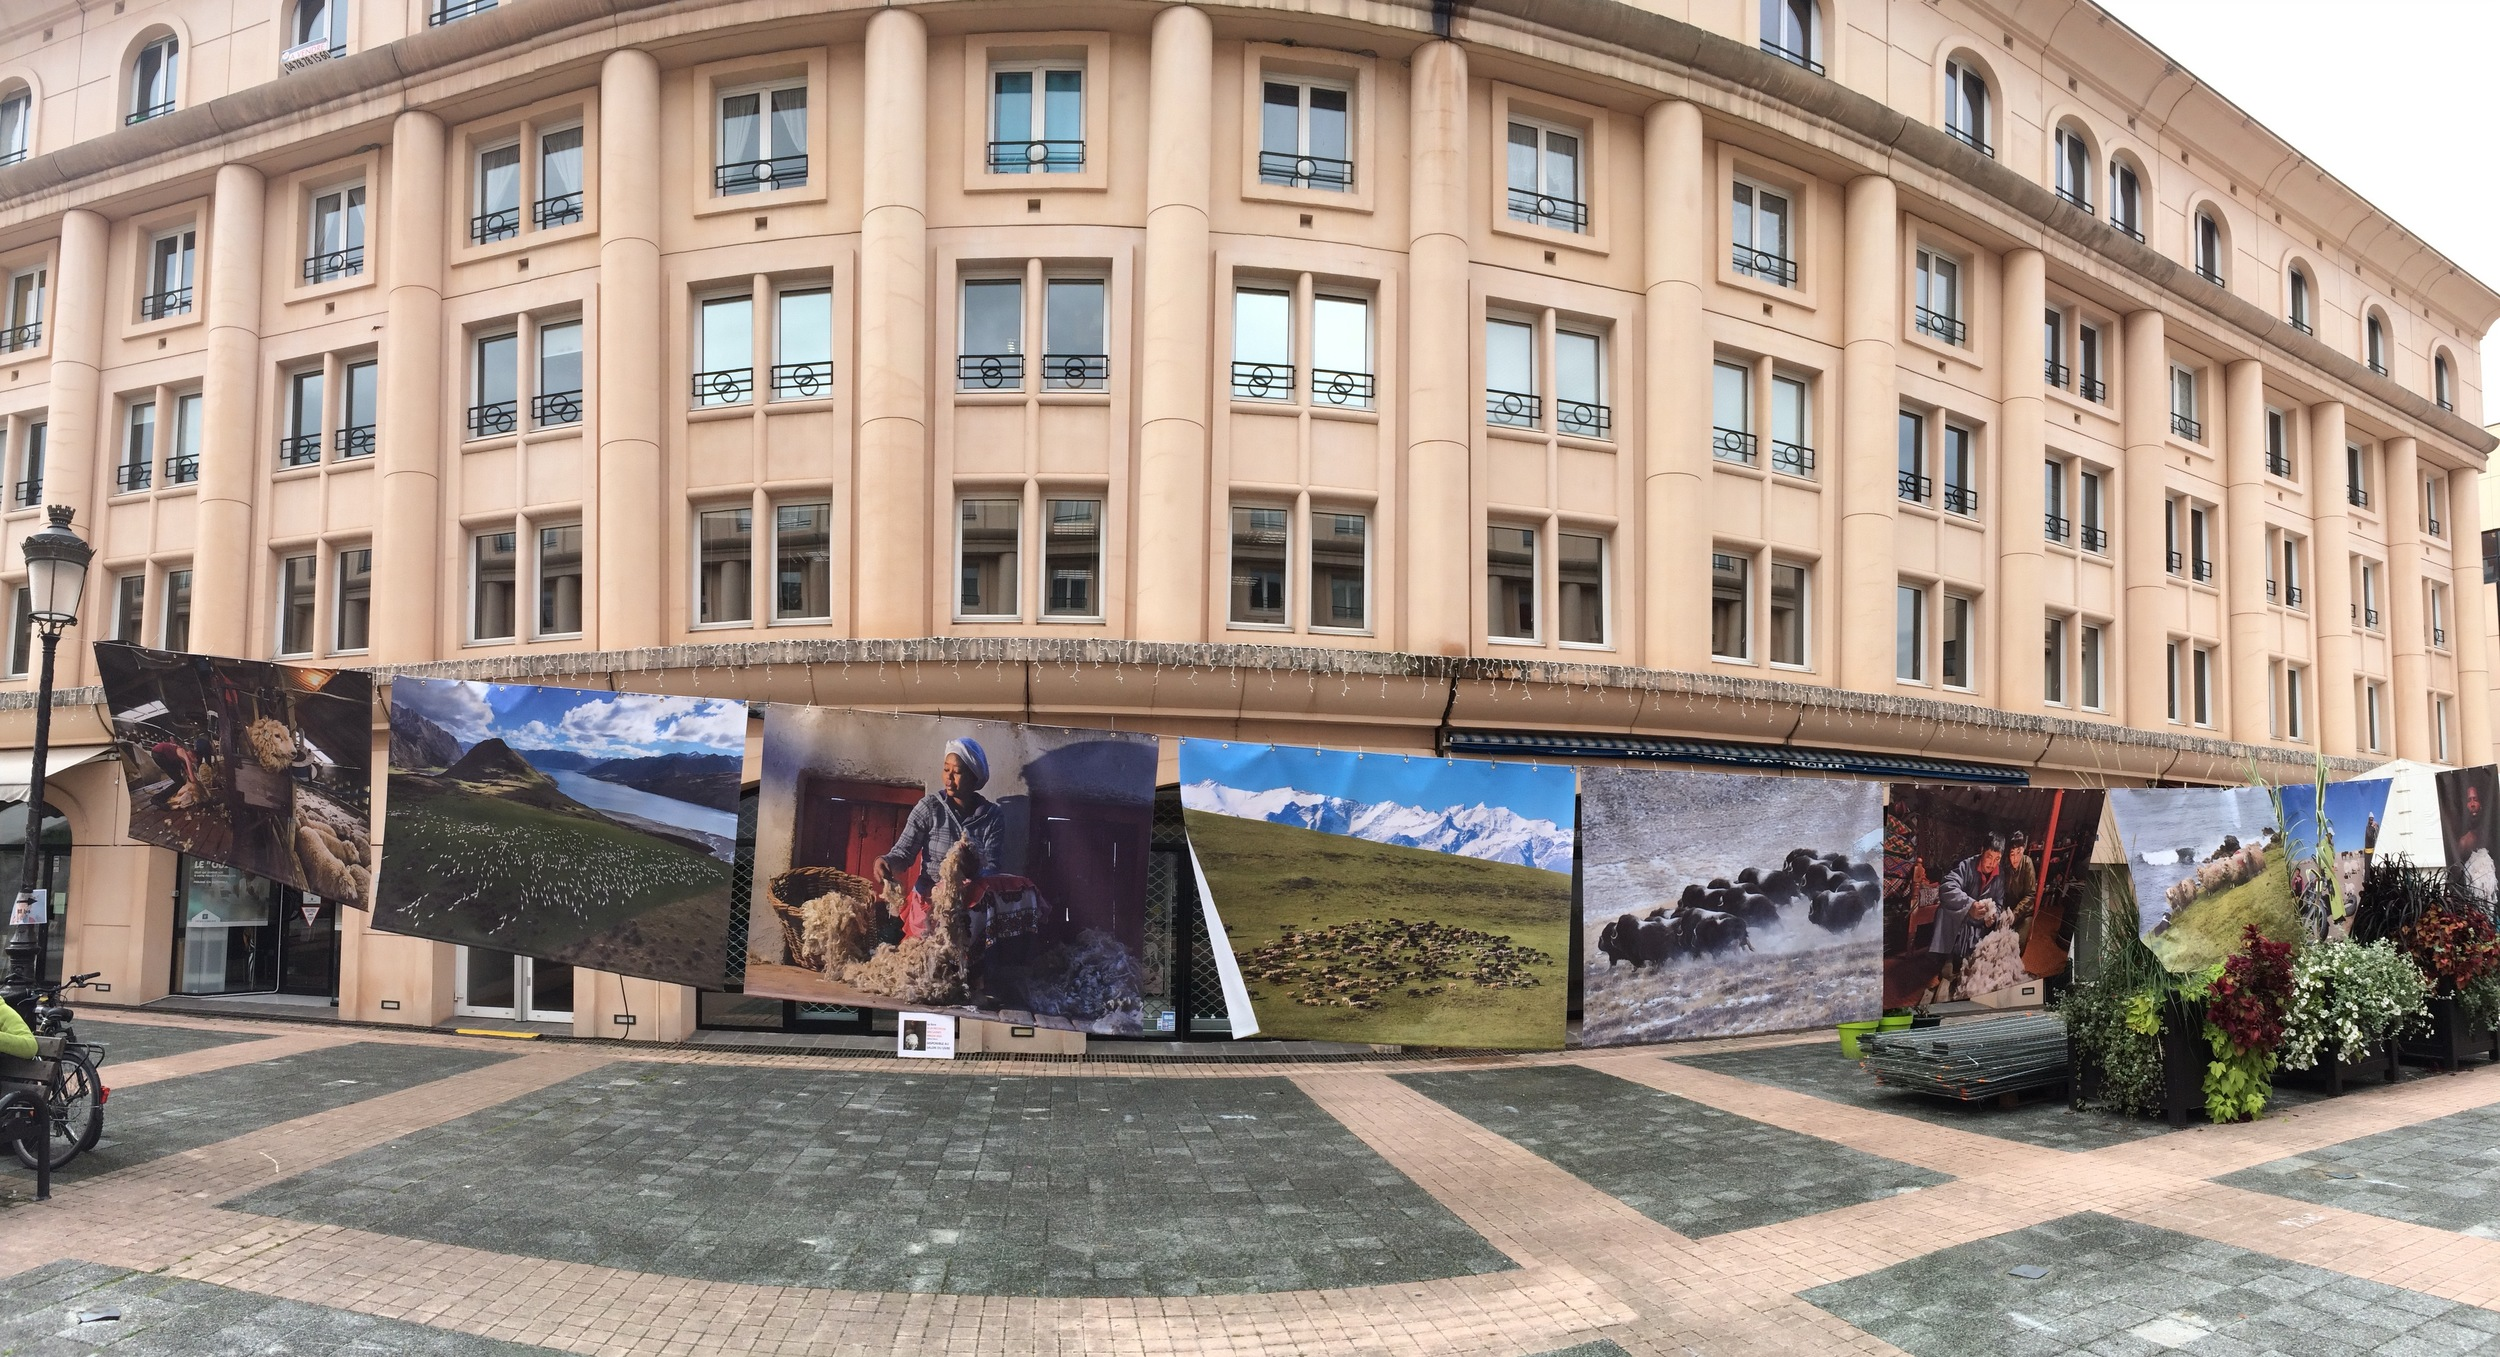 Albertville and some of the surrounded cities have a festival every year to educate people on other parts of the world. In the plaza they had huge photos displayed. It was beautiful!